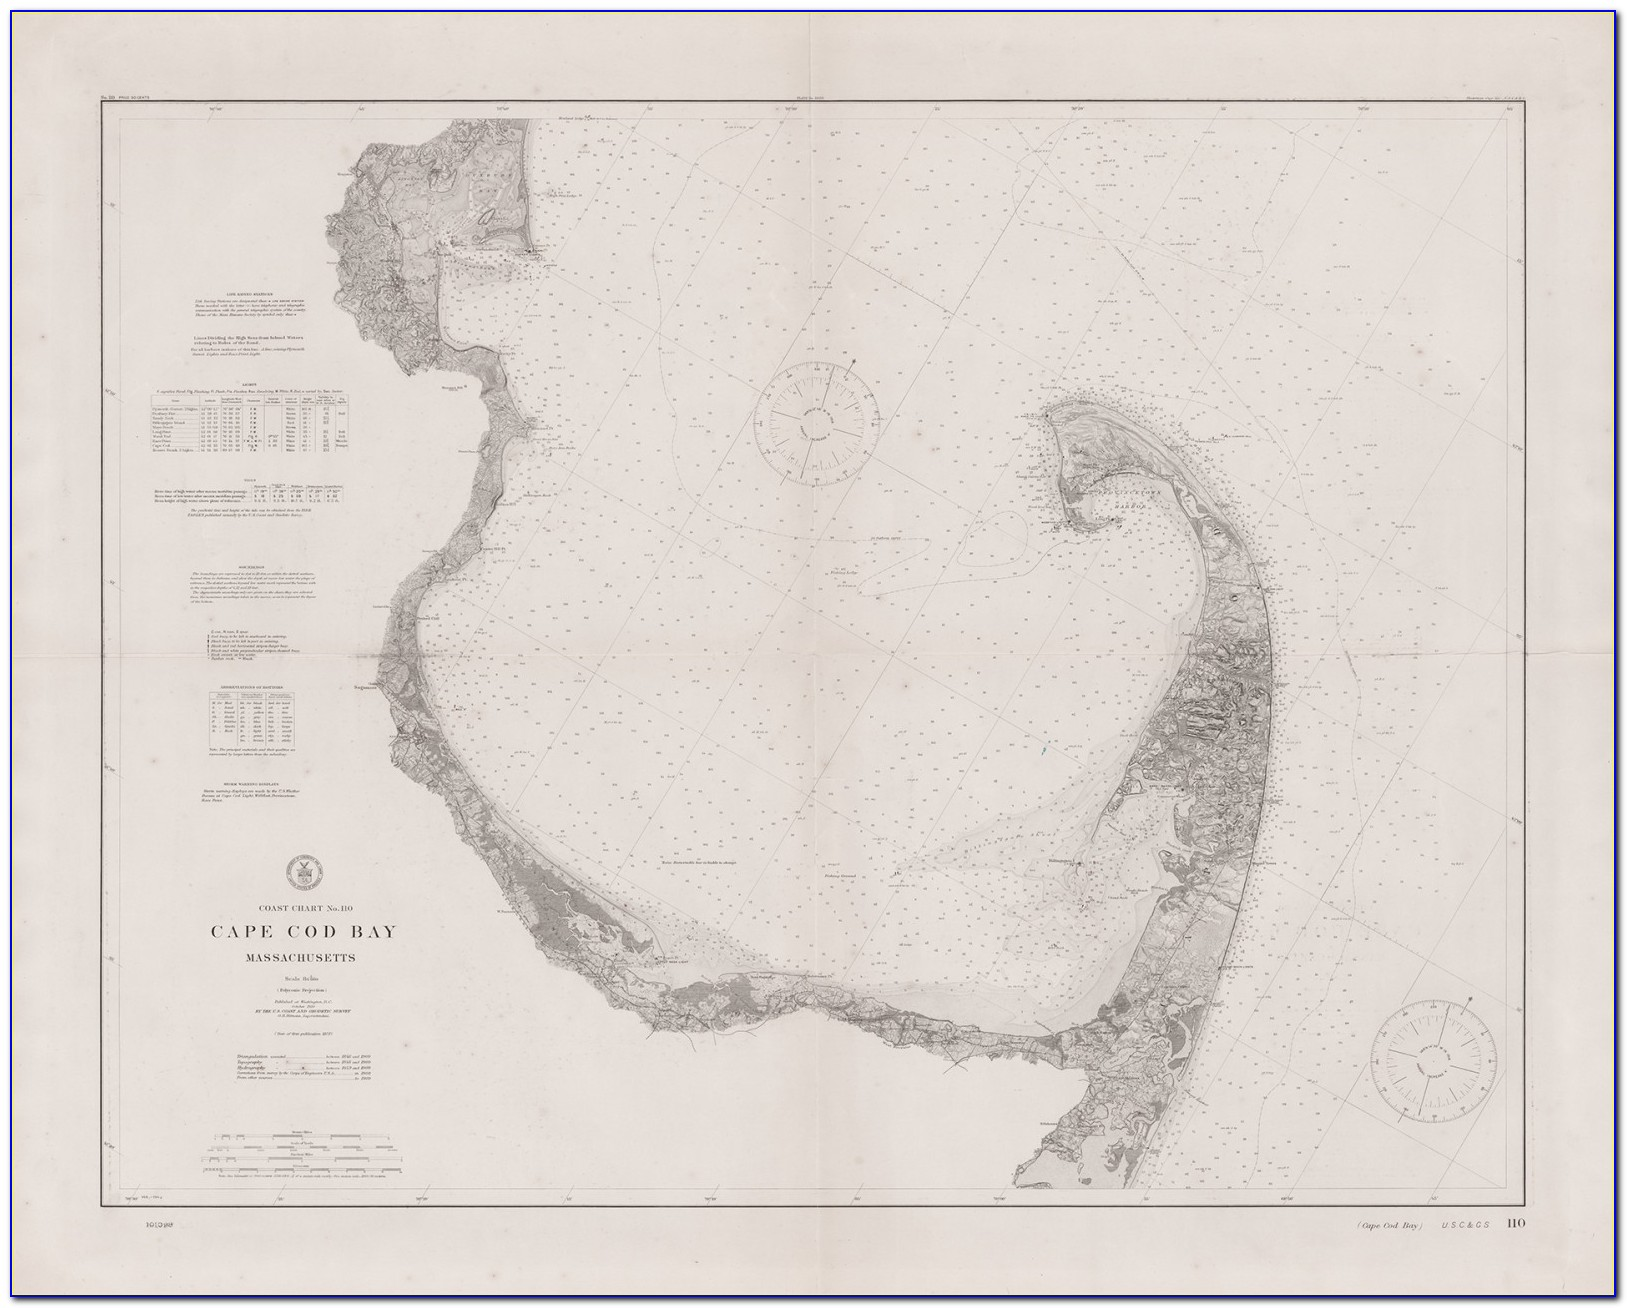 Nautical Chart Of Cape Cod Bay